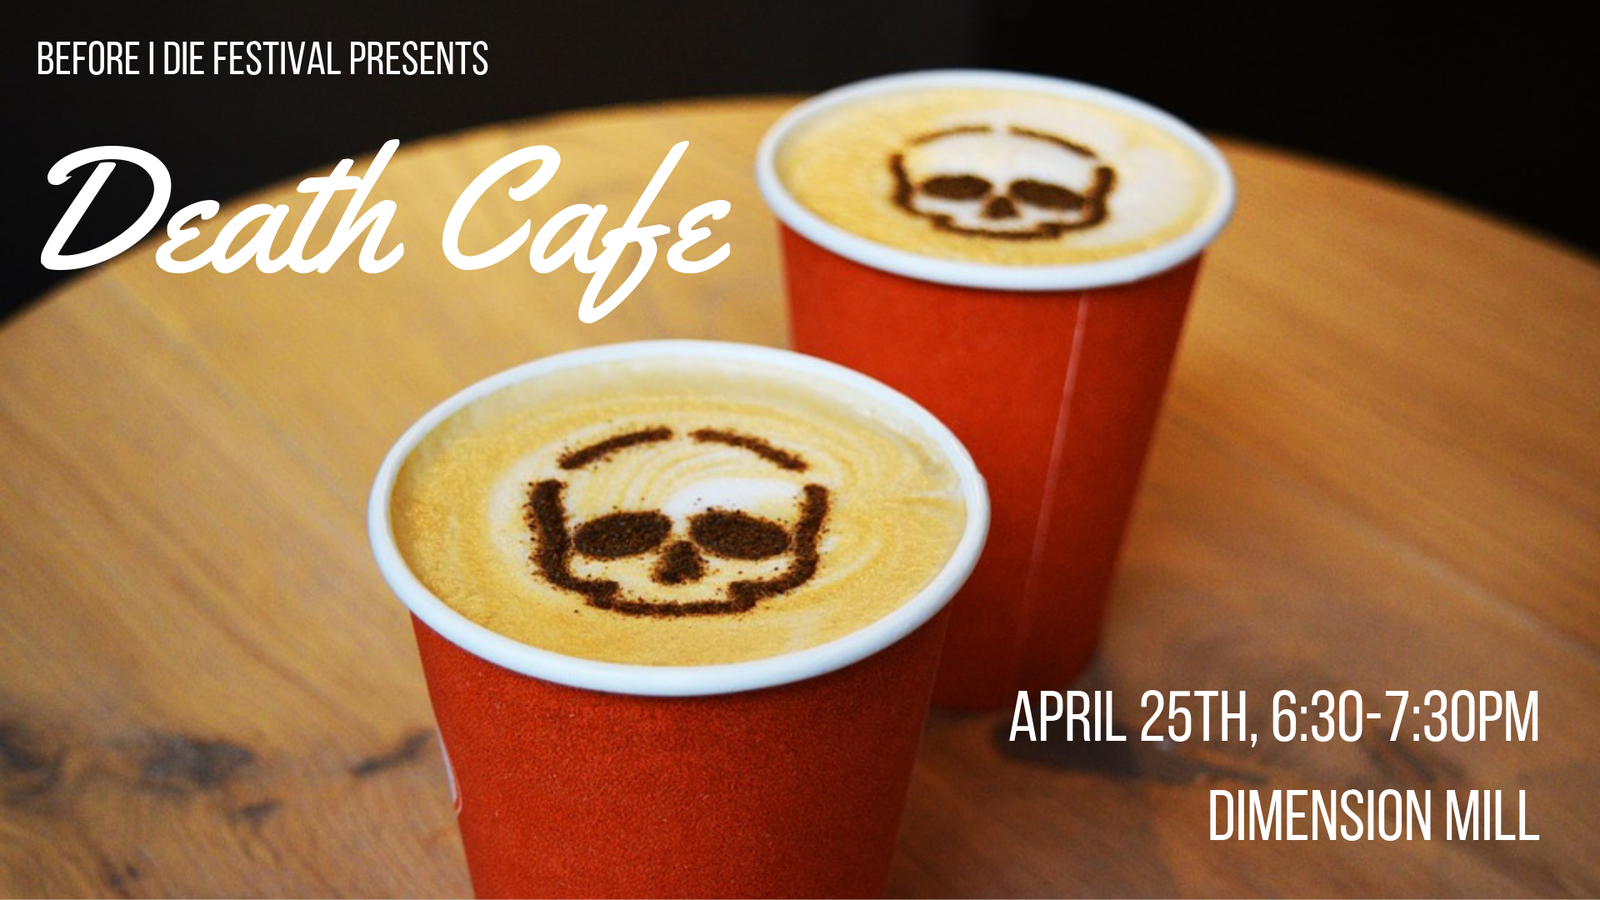 Death Cafe: Before I Die Festival Bloomington